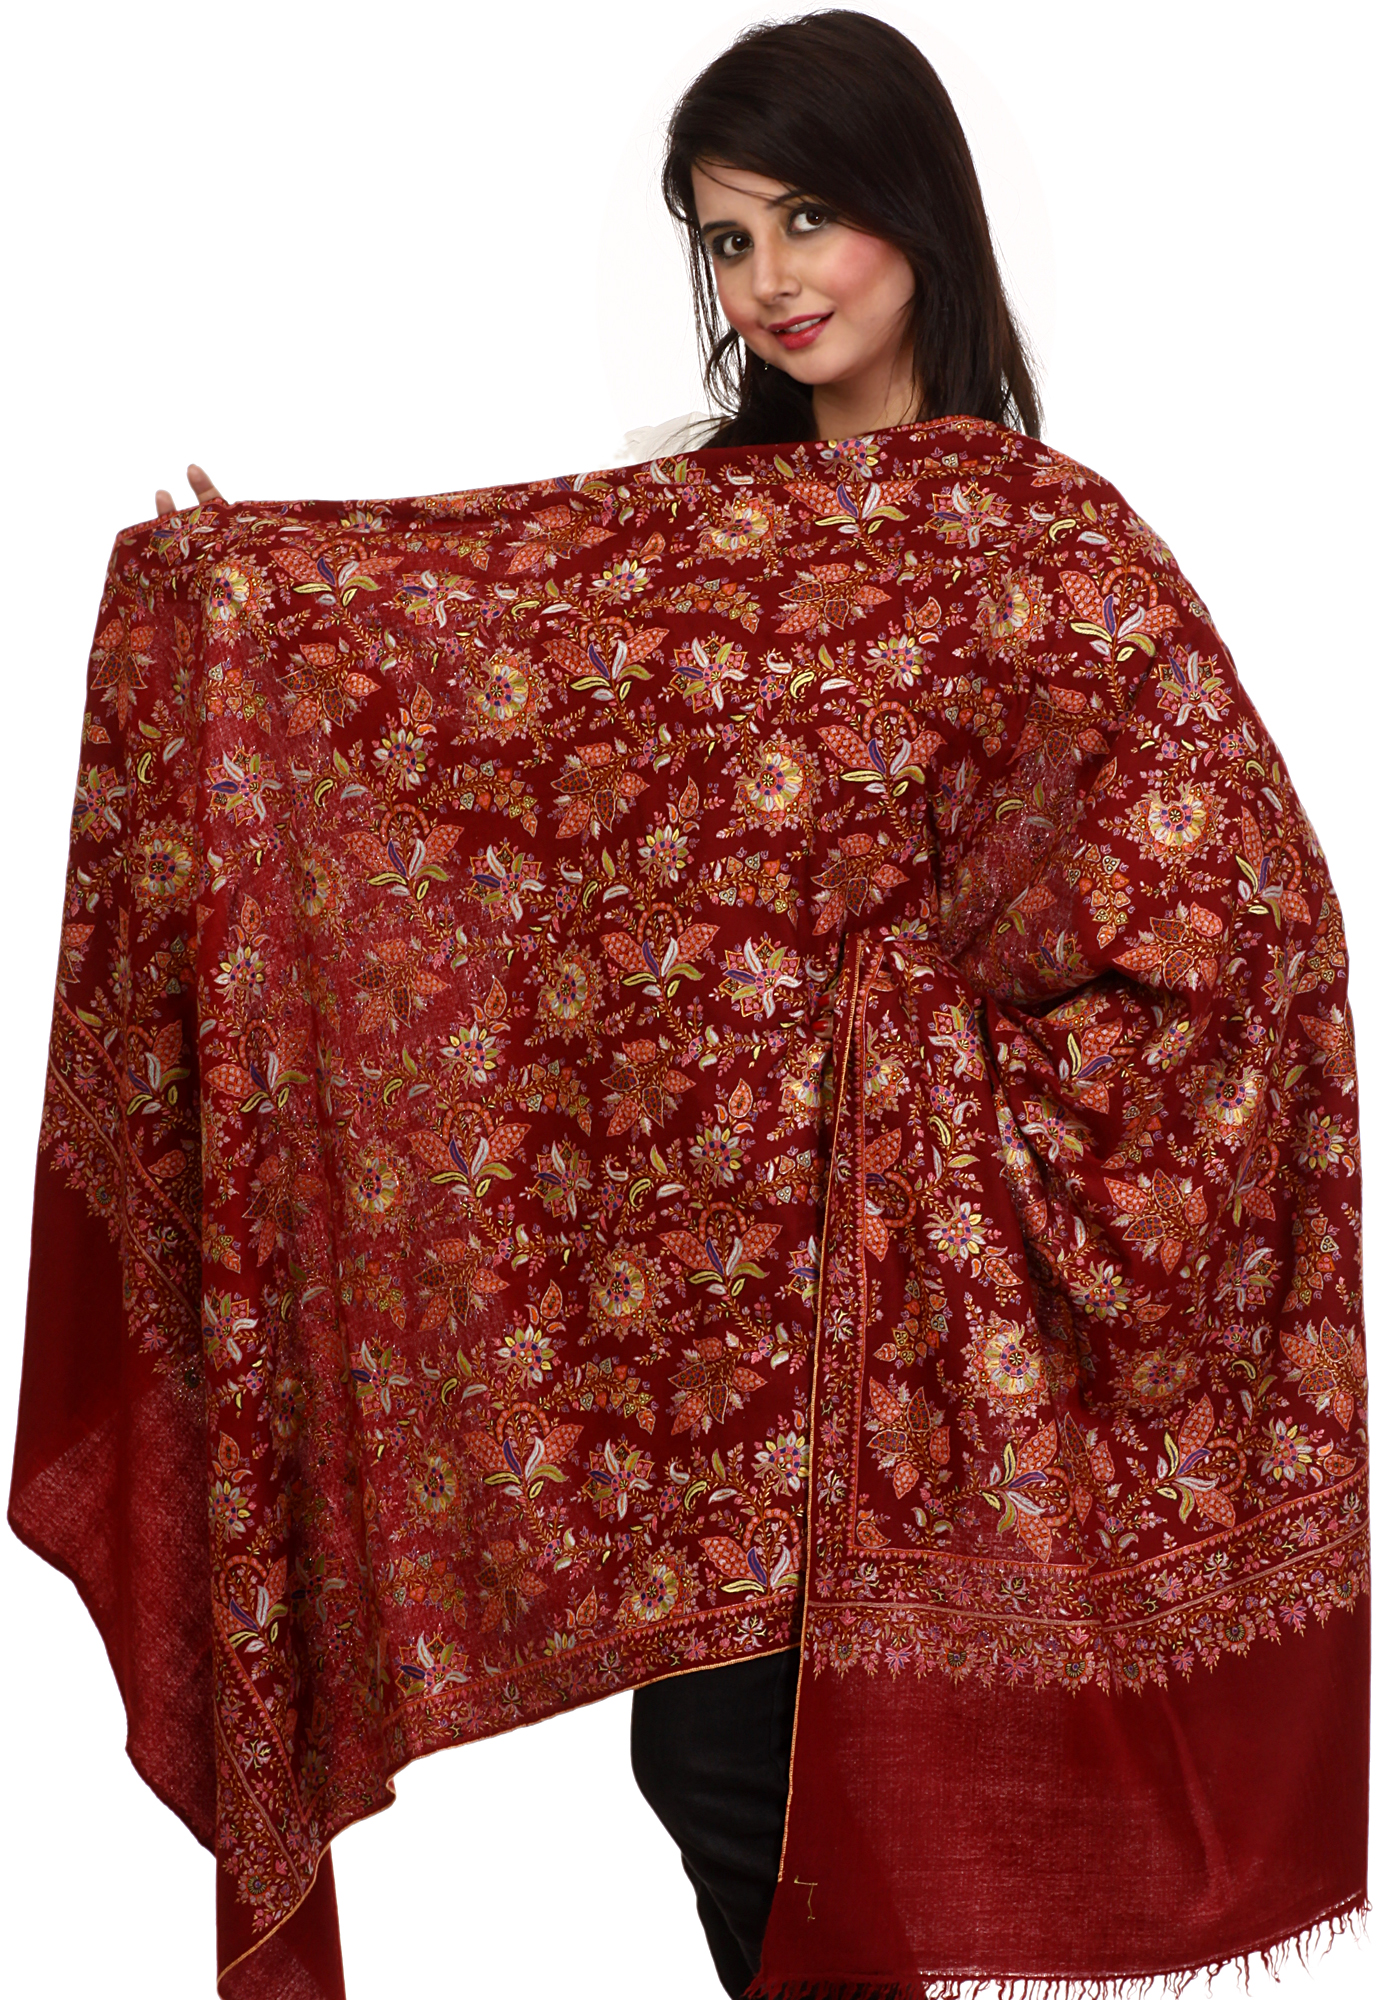 LookIt-Online Classifieds of Chennai Telephone Directory Pictures of kashmiri shawls